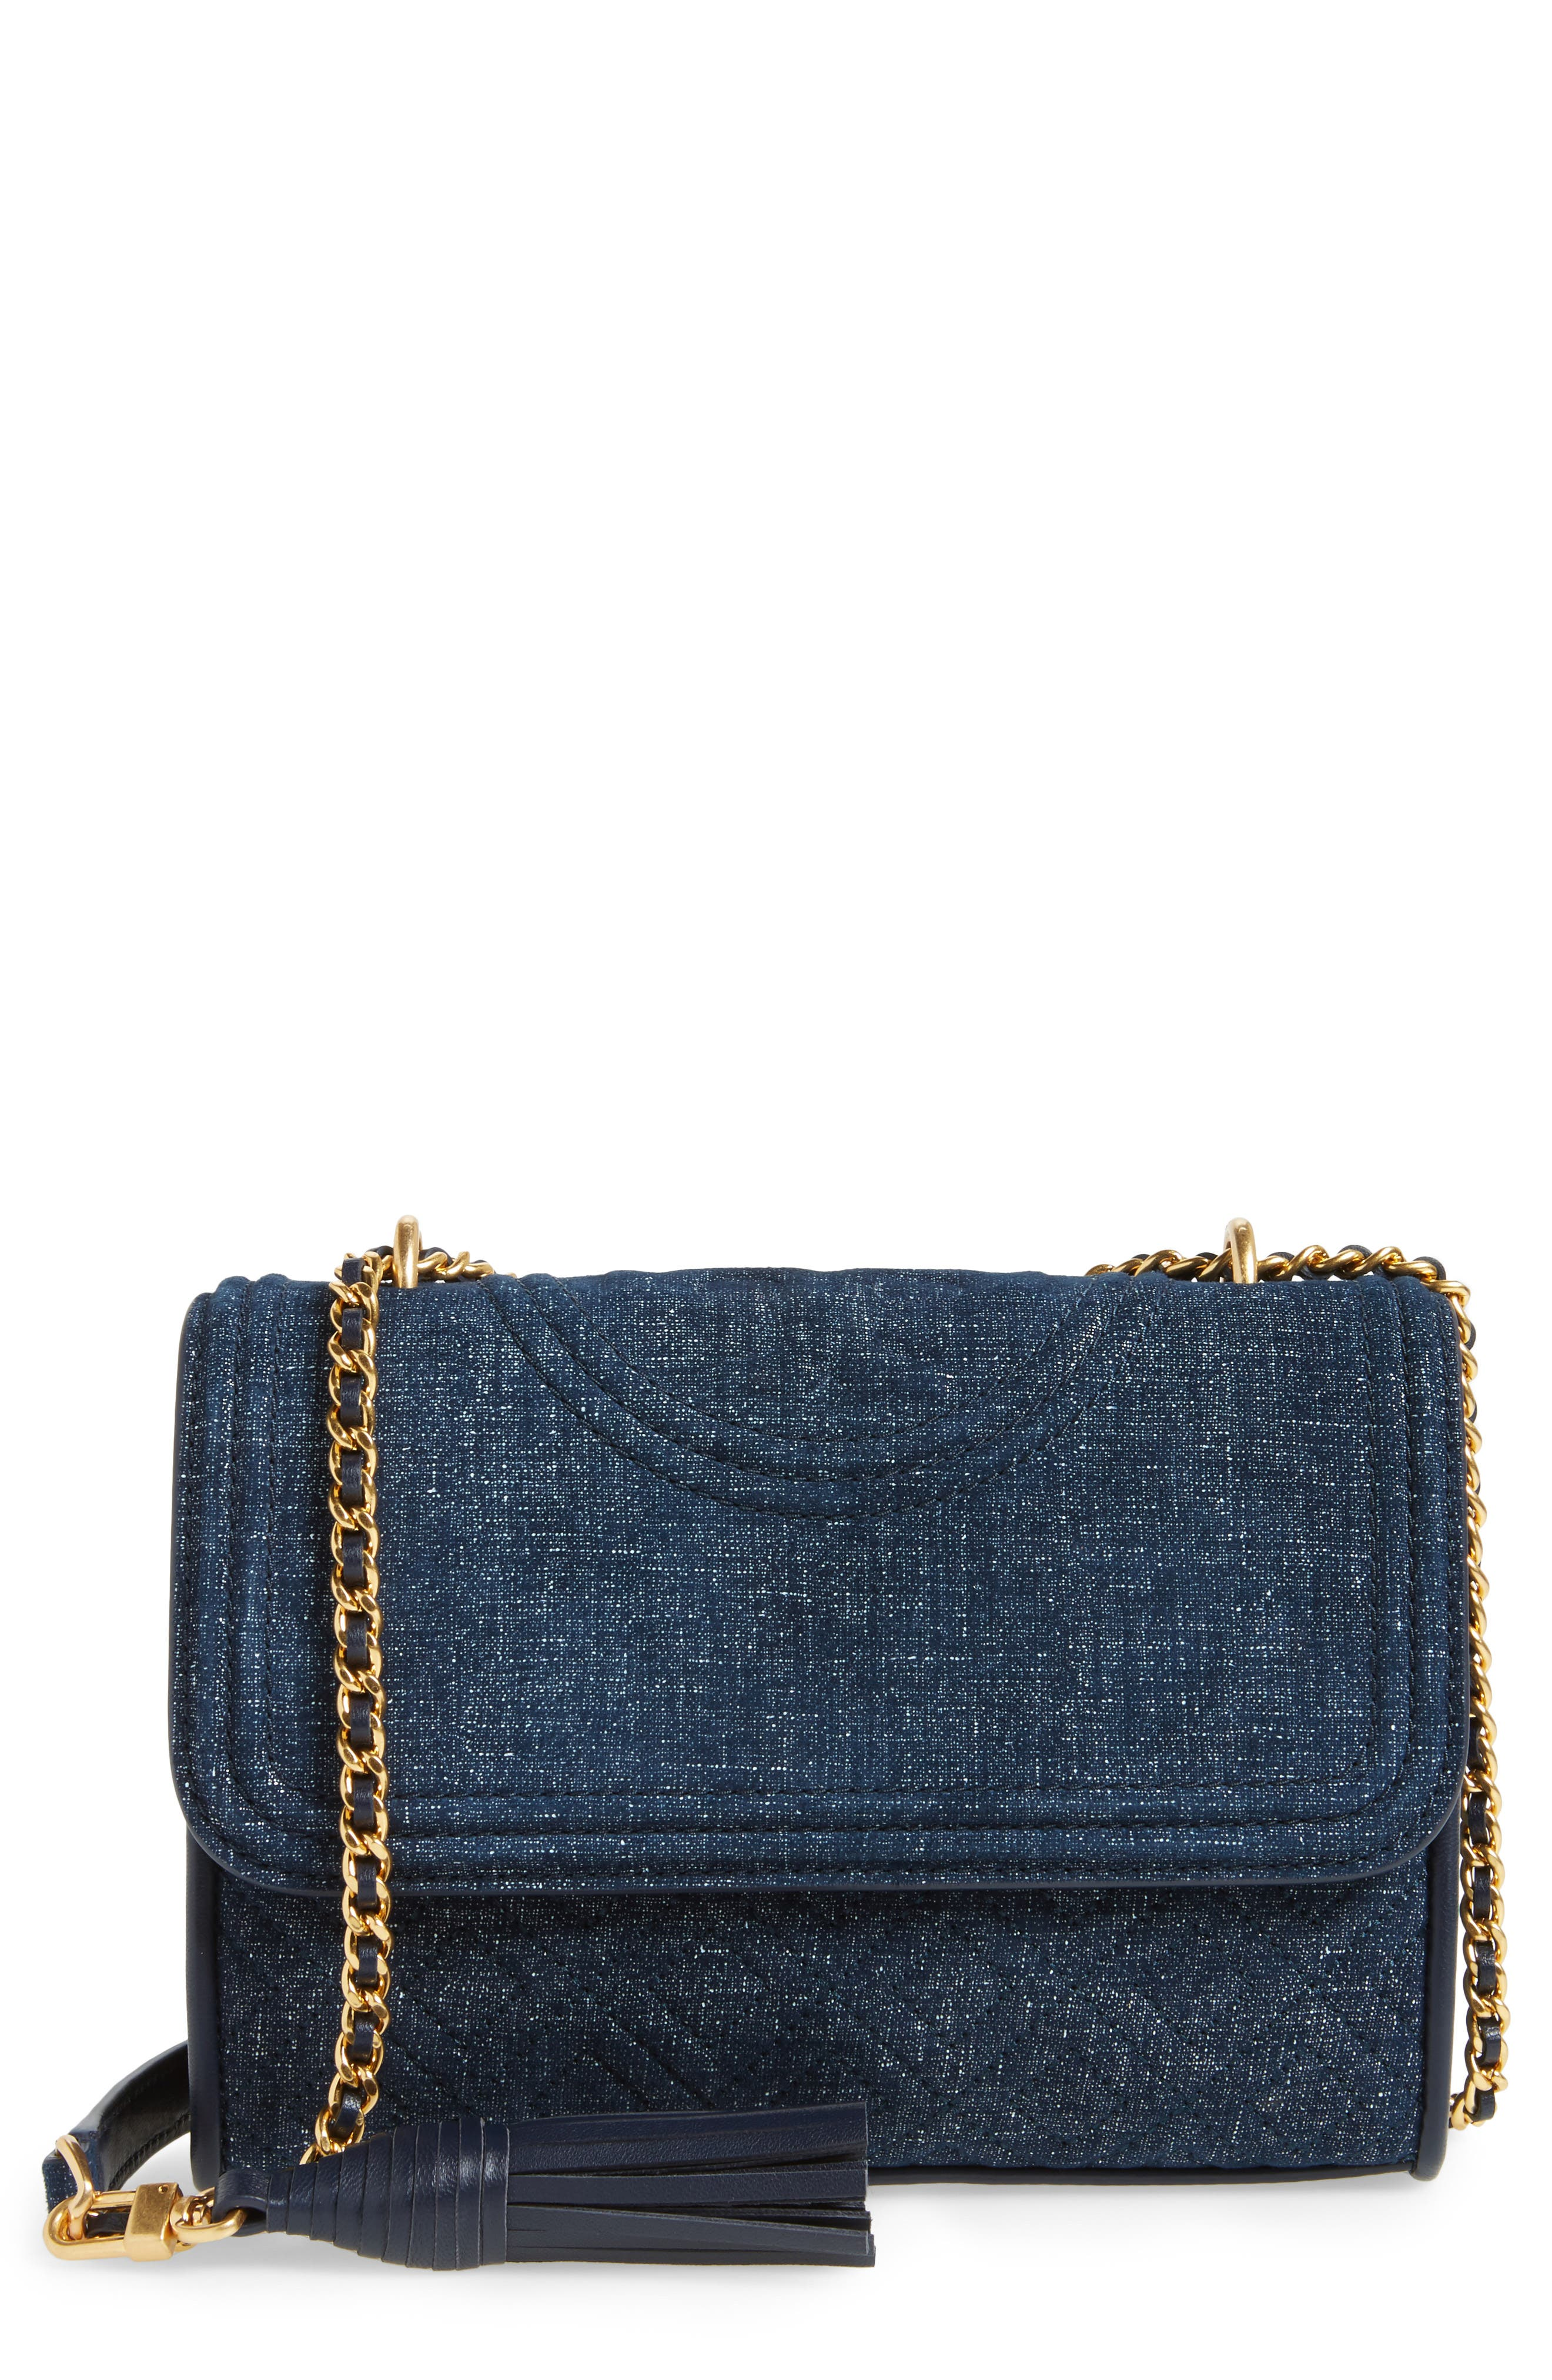 Small Fleming Logo Quilted Denim Shoulder/Crossbody Bag,                             Main thumbnail 1, color,                             Tory Navy